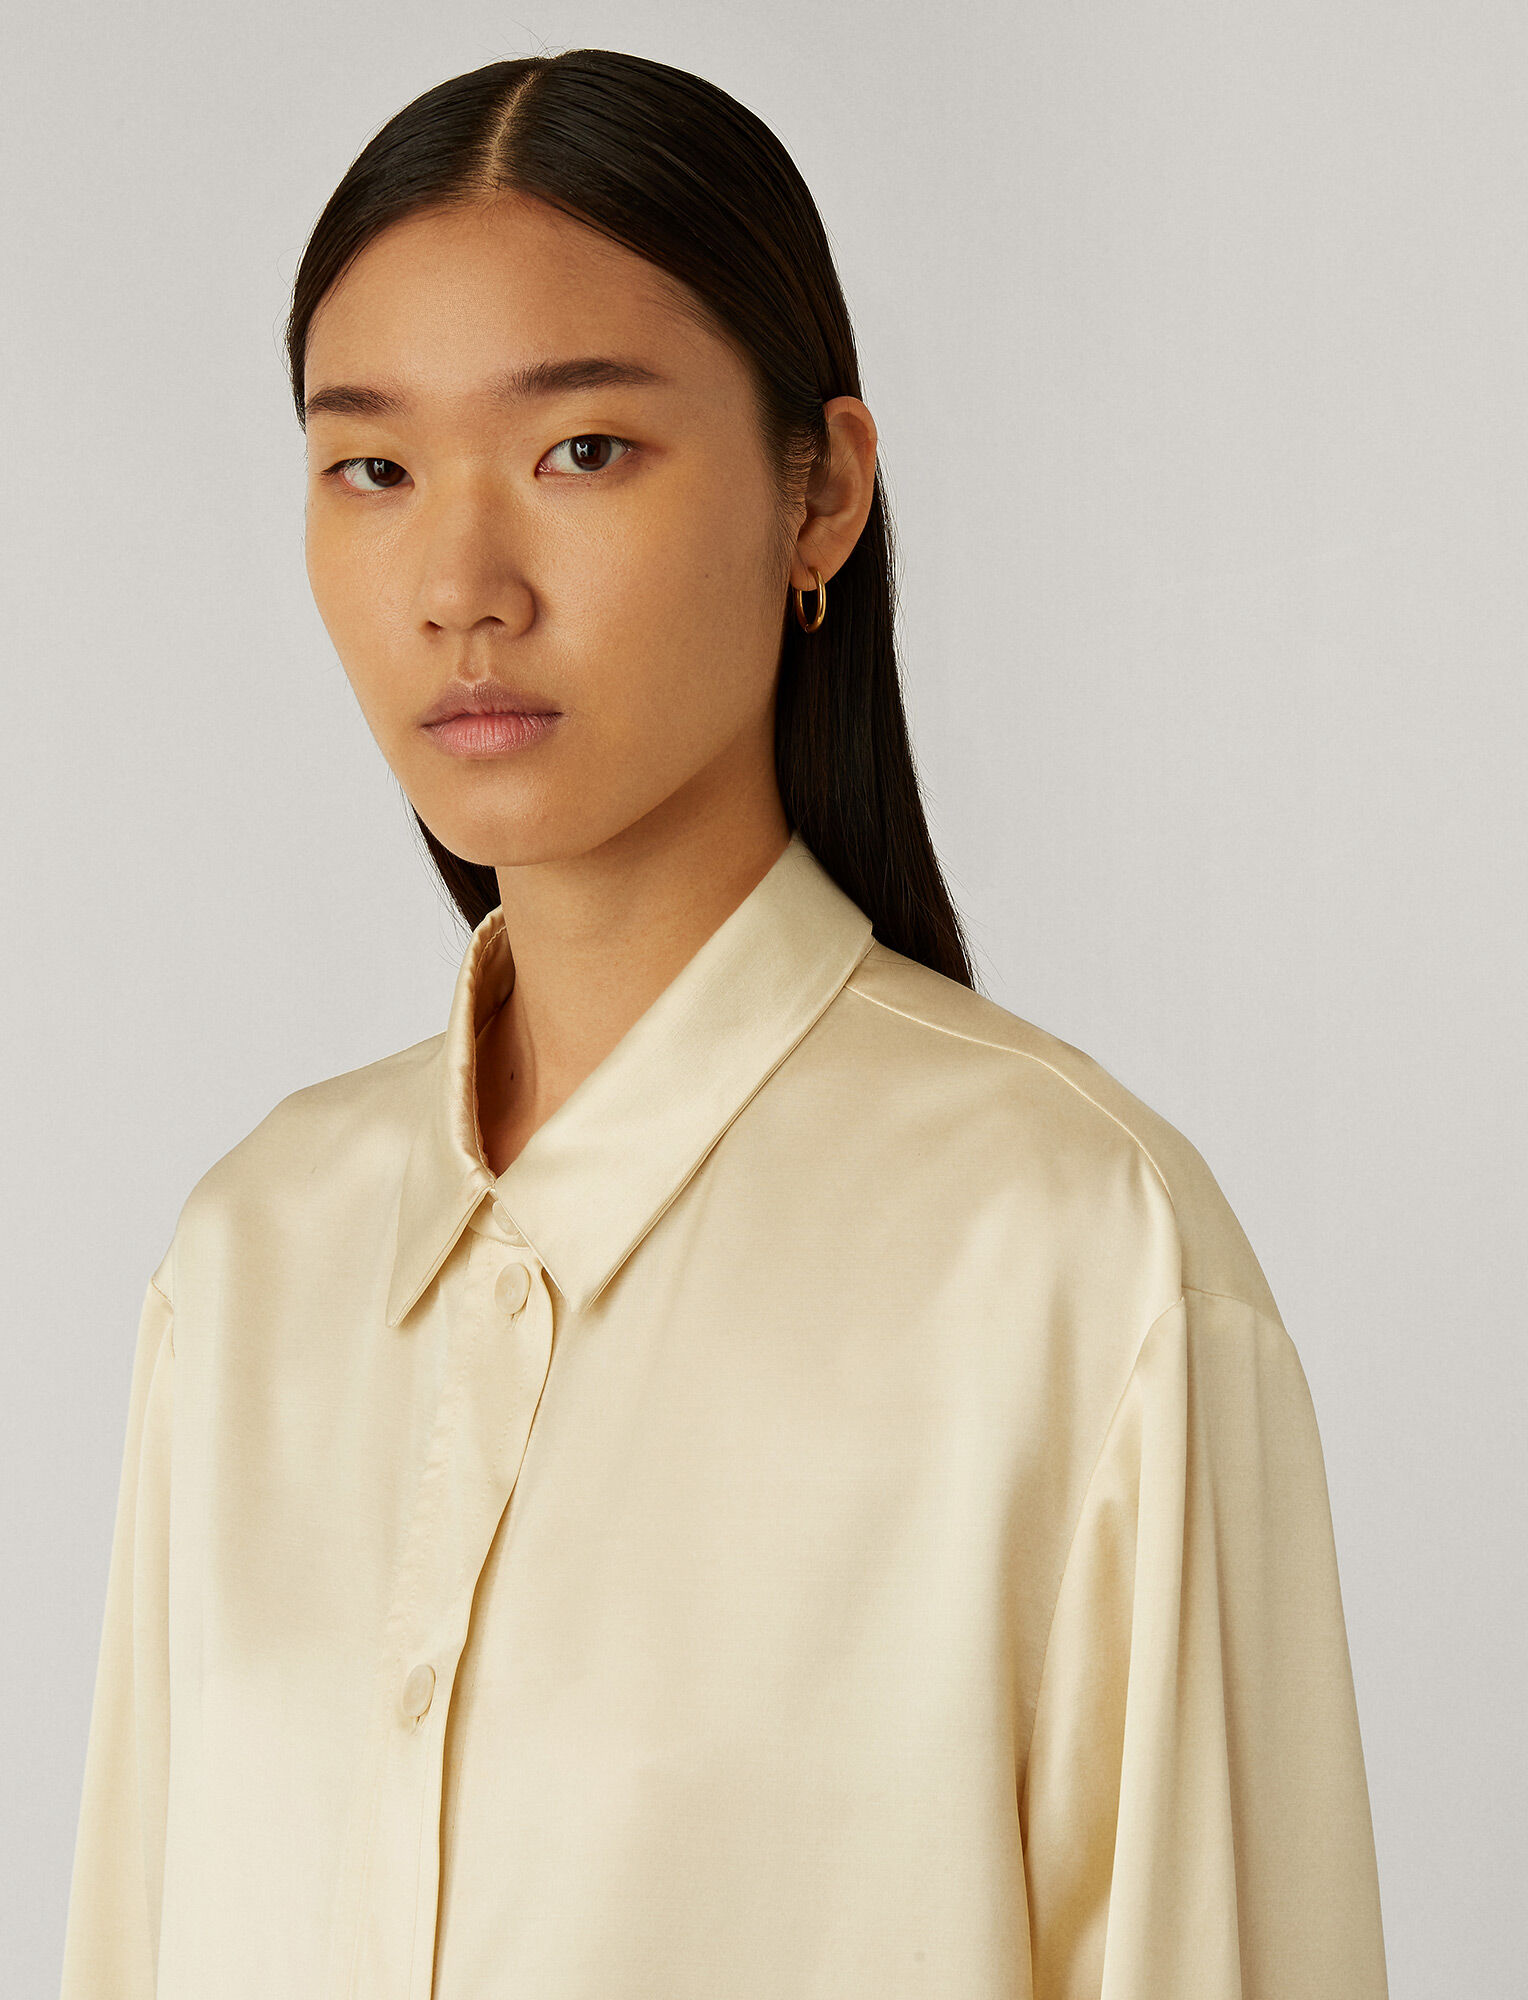 Joseph, Bernel Satin Wool Blouse, in Ivory